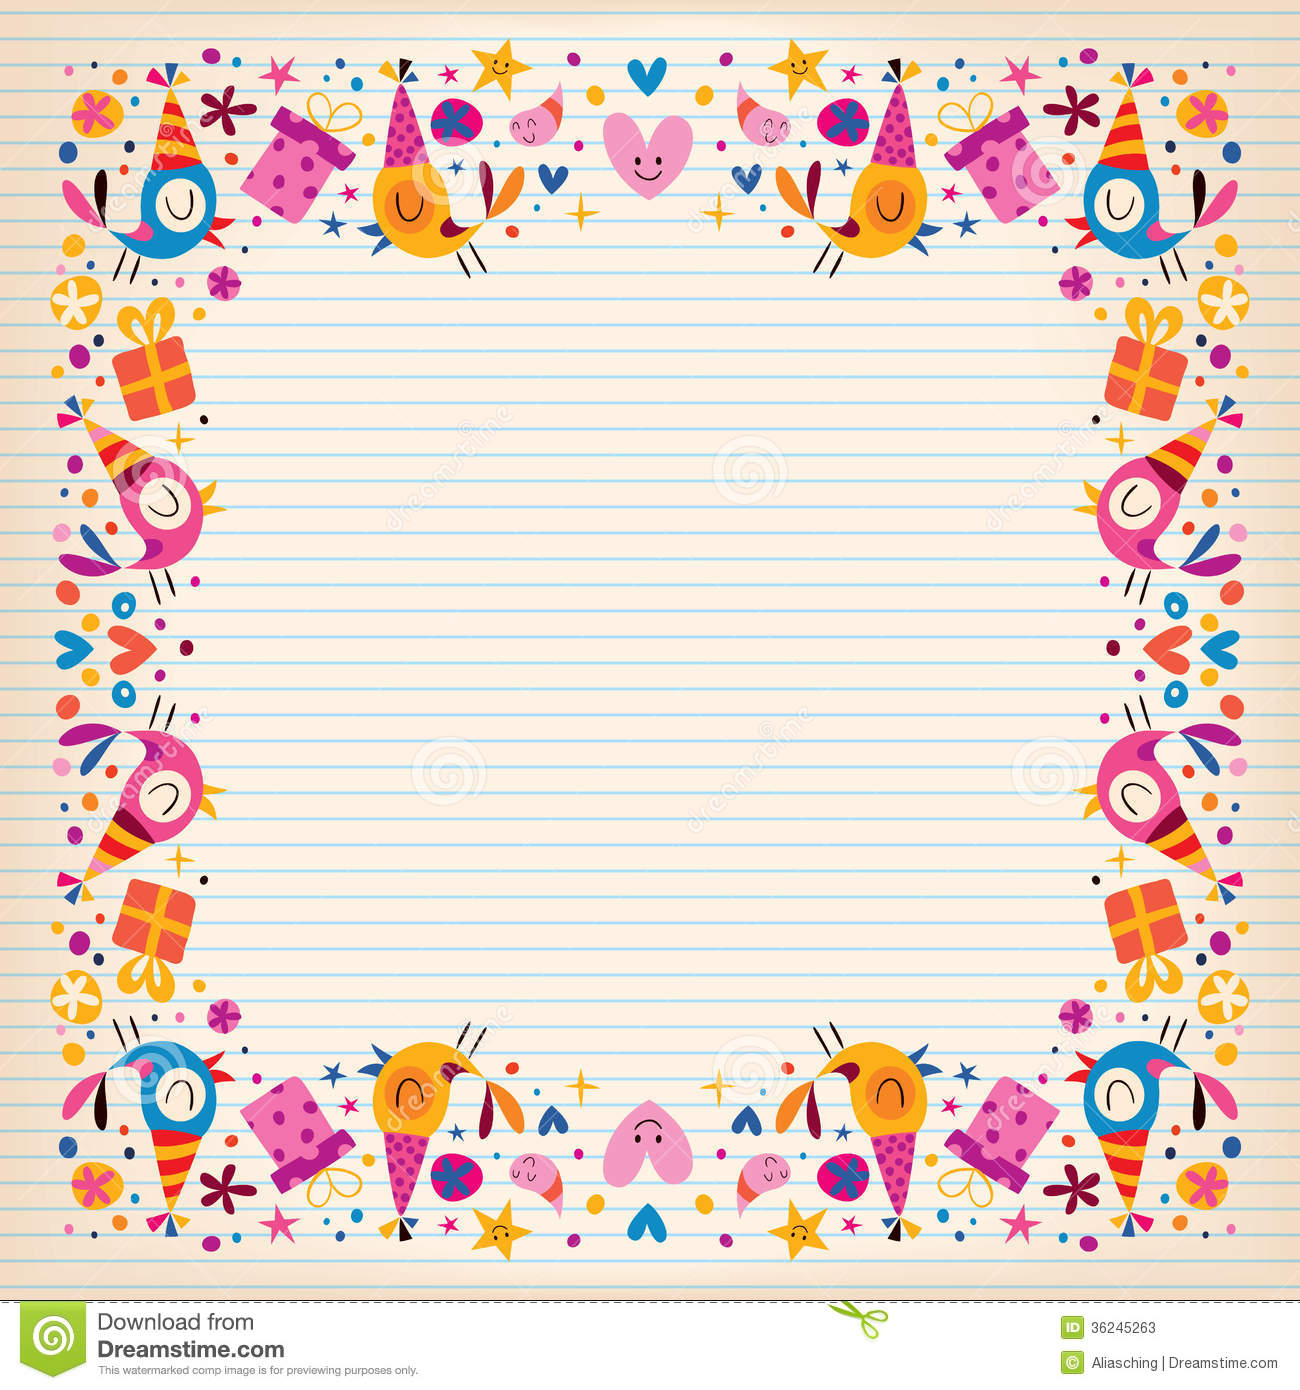 happy birthday border lined paper card space for text stock  happy birthday border lined paper card space for text